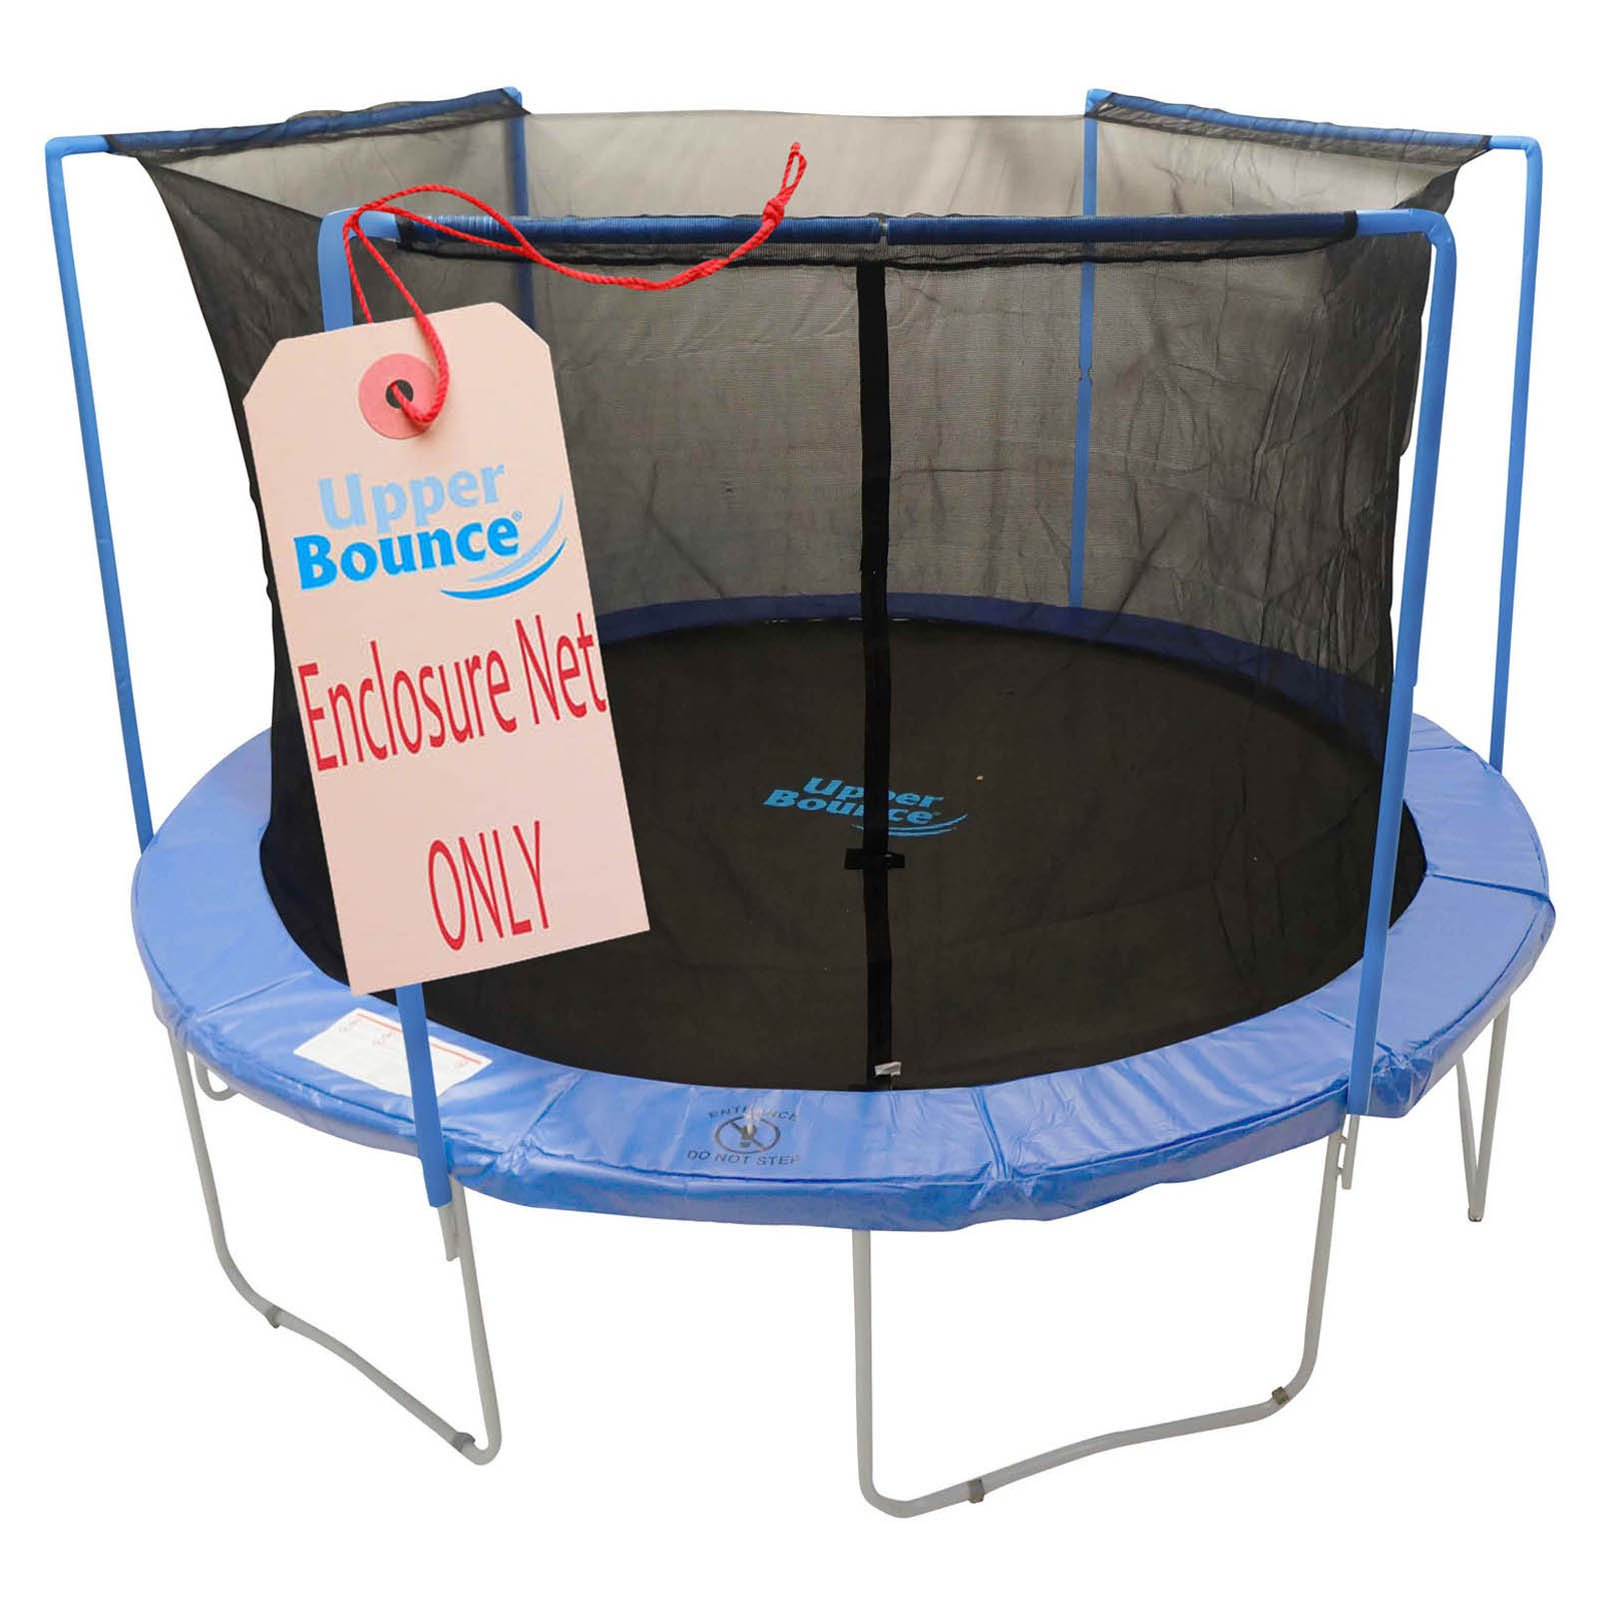 Upper Bounce 6 ft. Trampoline Enclosure Safety Net